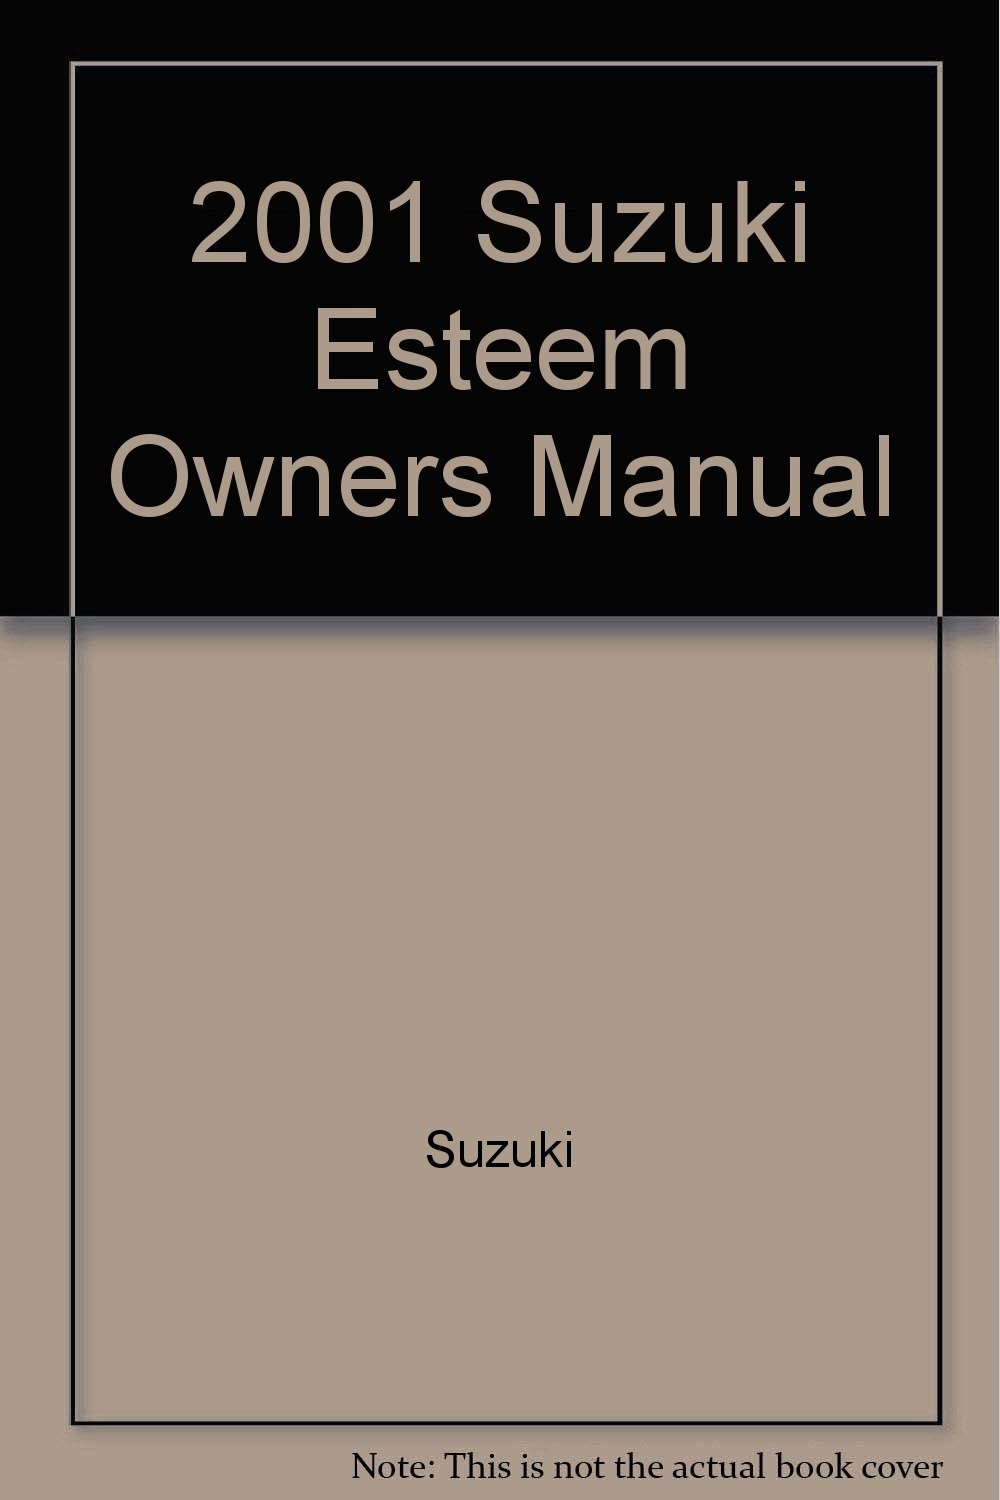 2001 suzuki esteem owners manual amazon com books rh amazon com esteem manual book User Manual